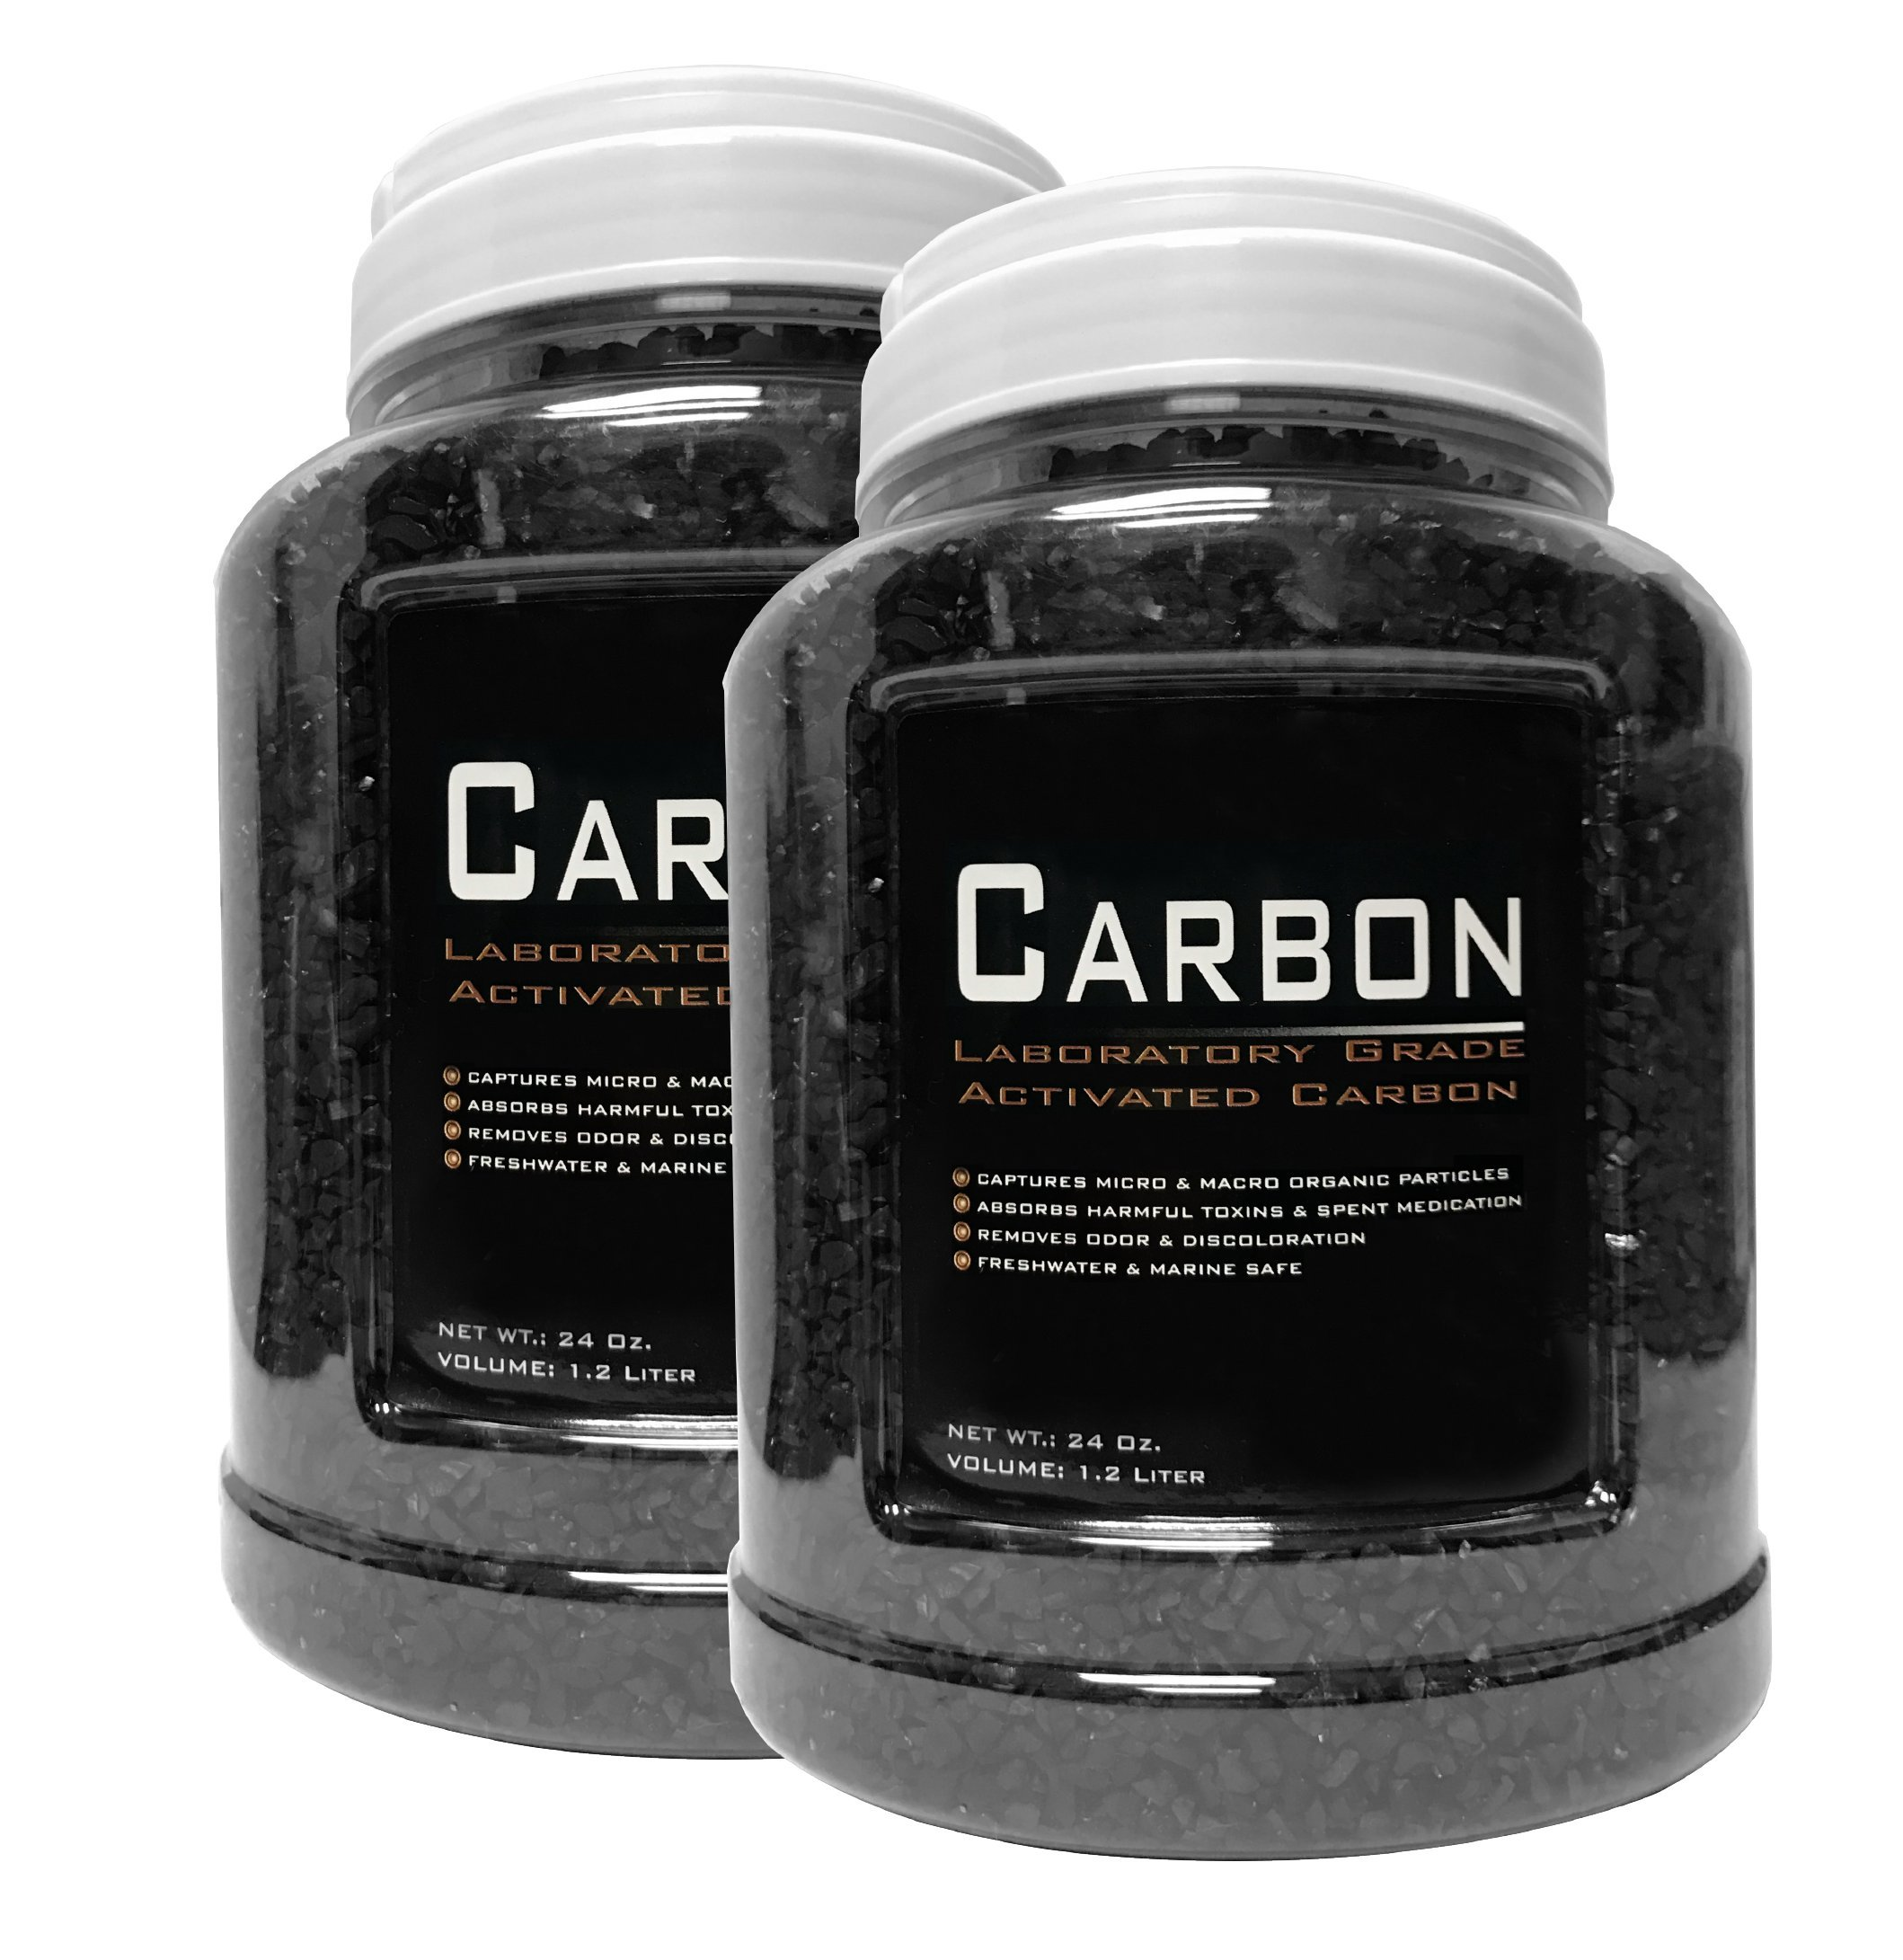 Encompass All 2 Pack - 24 Ounce Premium Laboratory Grade Super Activated Carbon with Free Media Bag Inside Each Jar - AM Brand